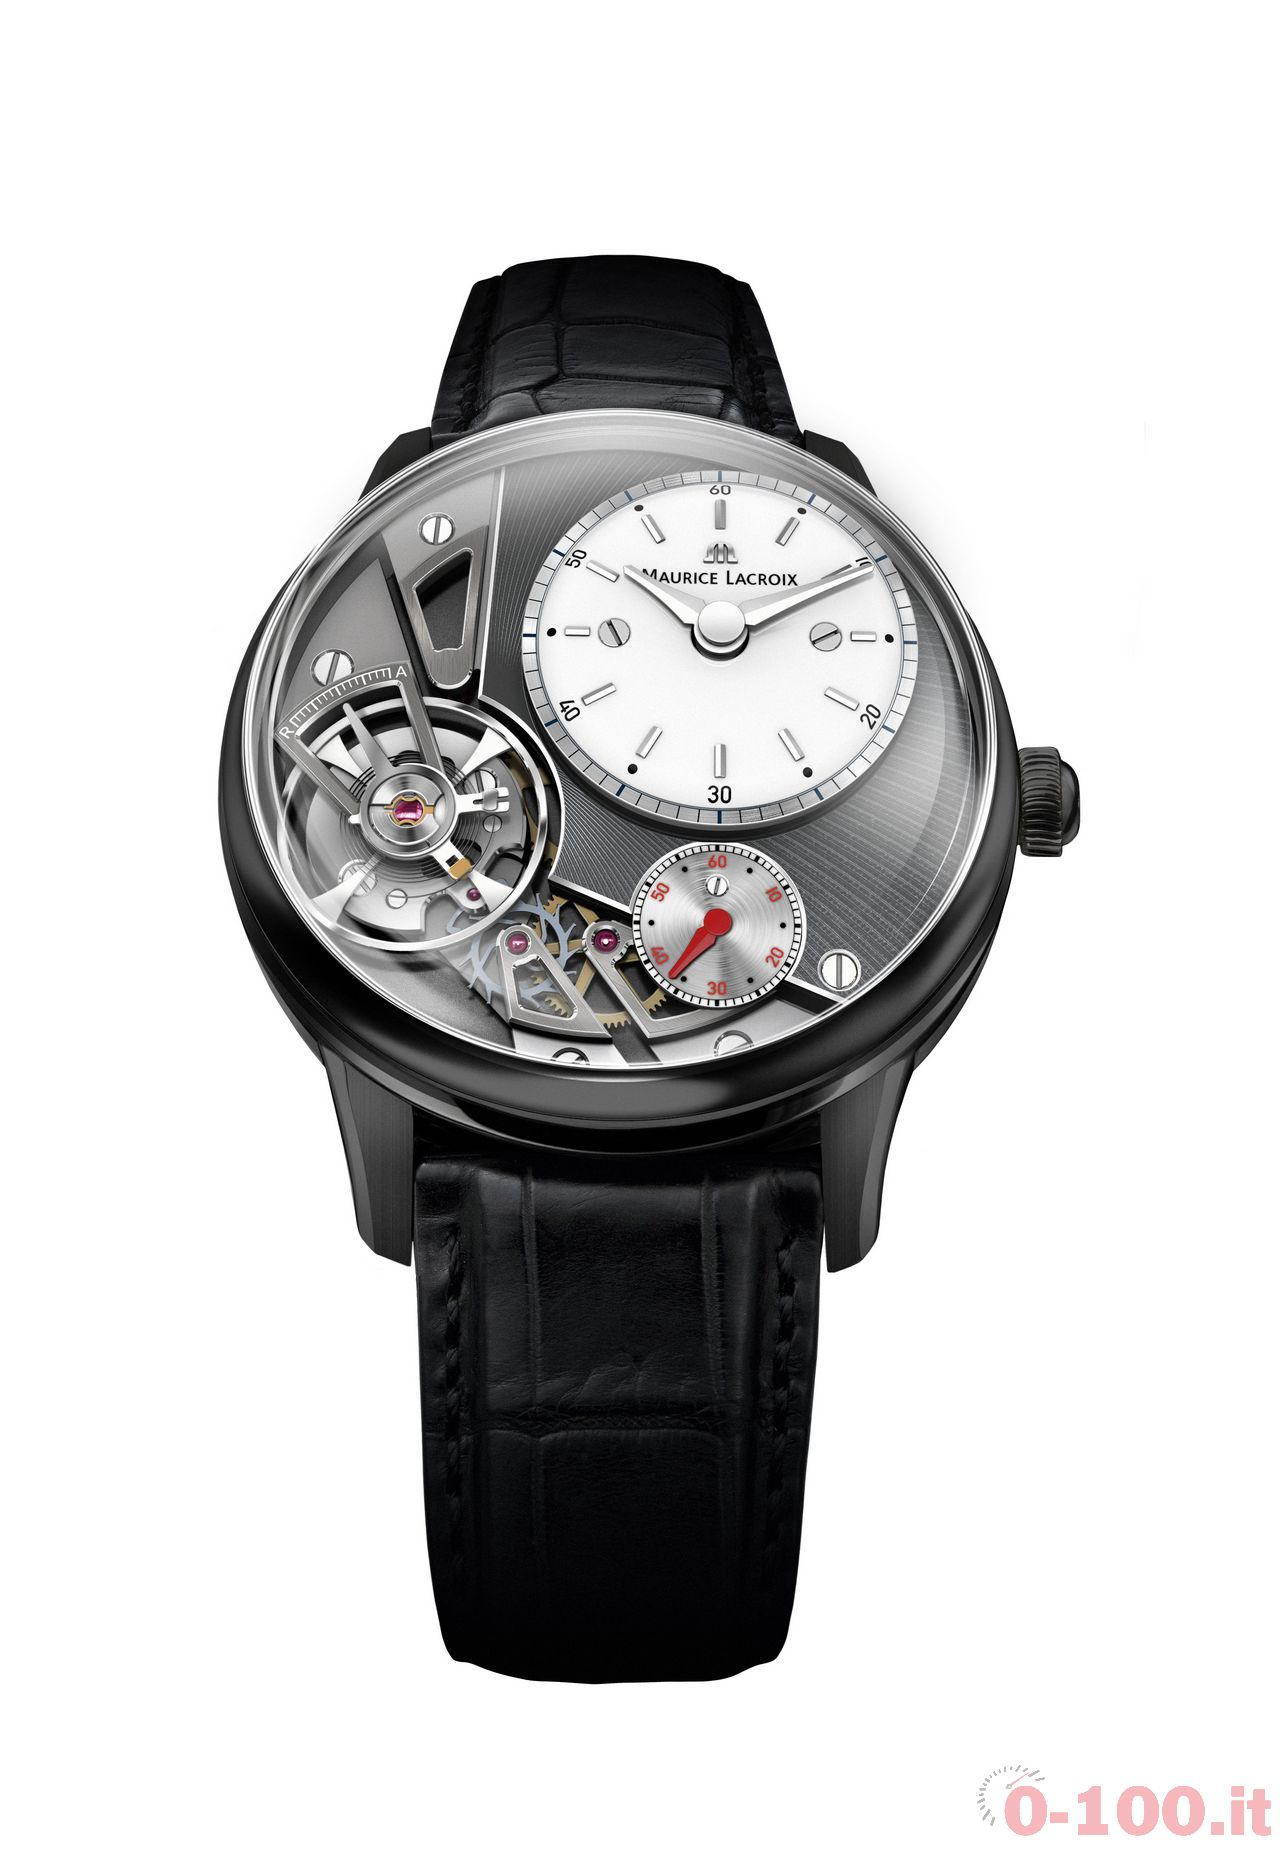 Baselworld-2014-Maurice-Lacroix-Masterpiece-Gravity _0-1008